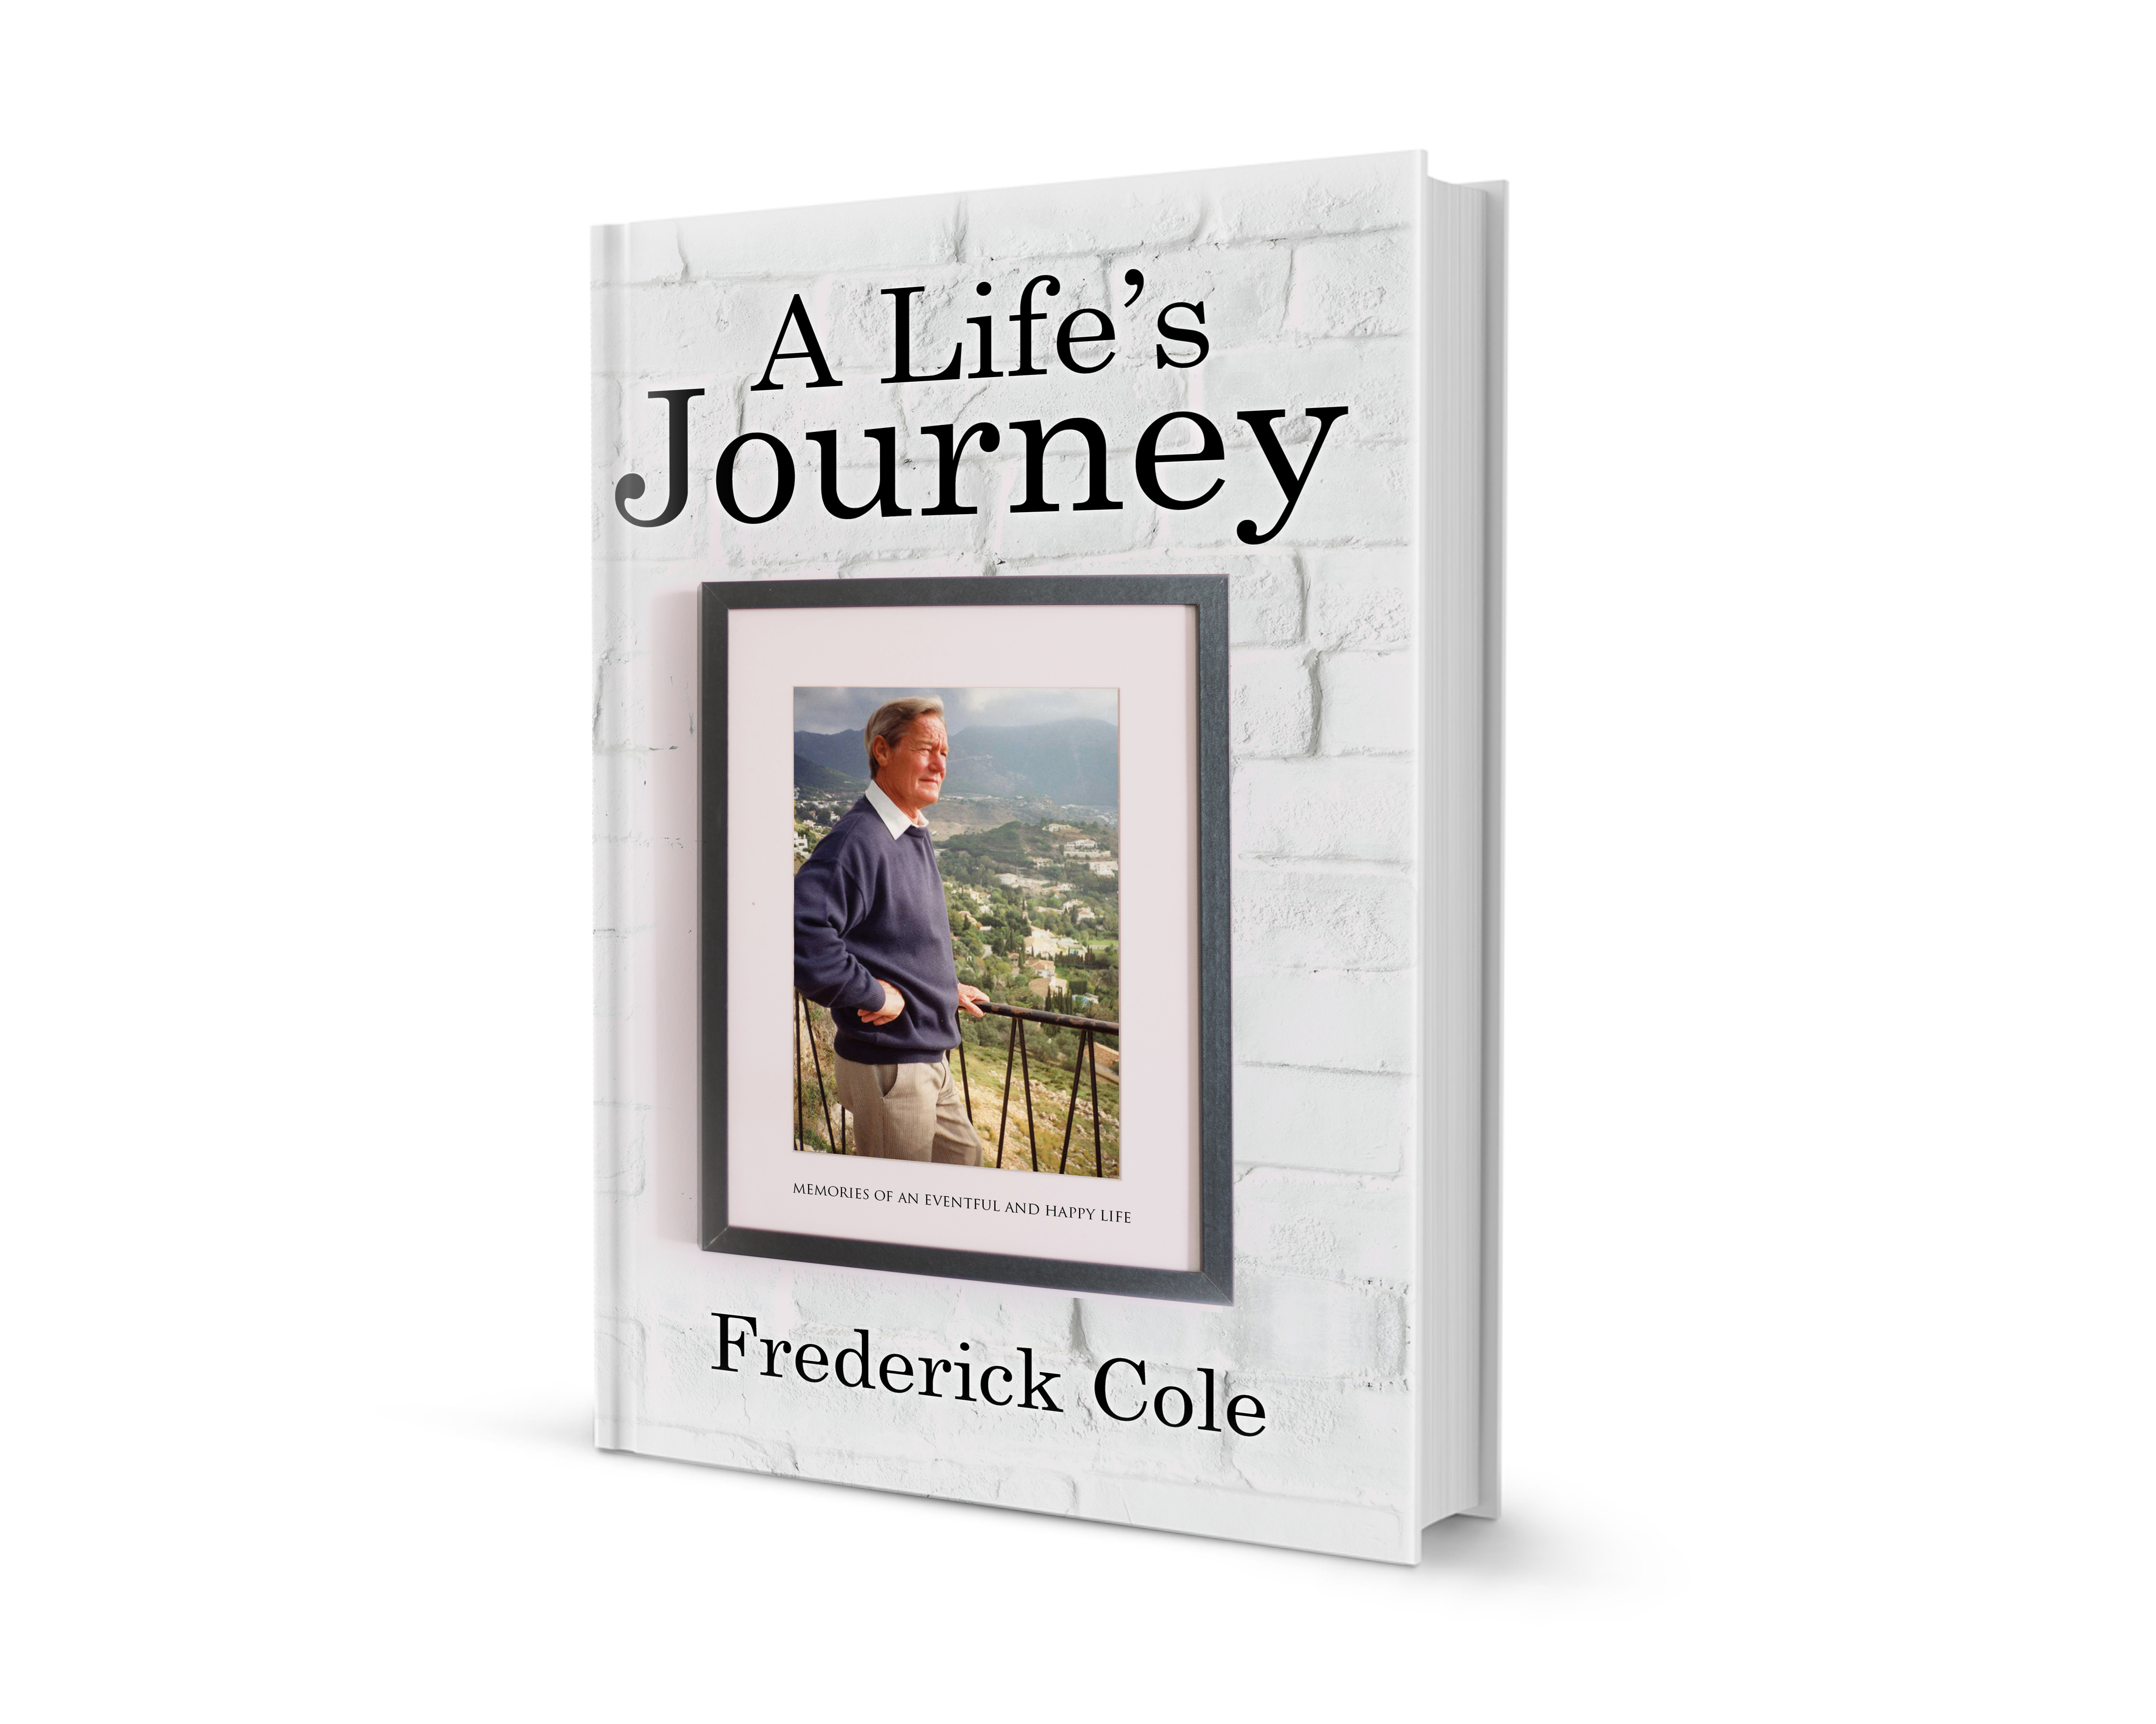 A Life's Journey